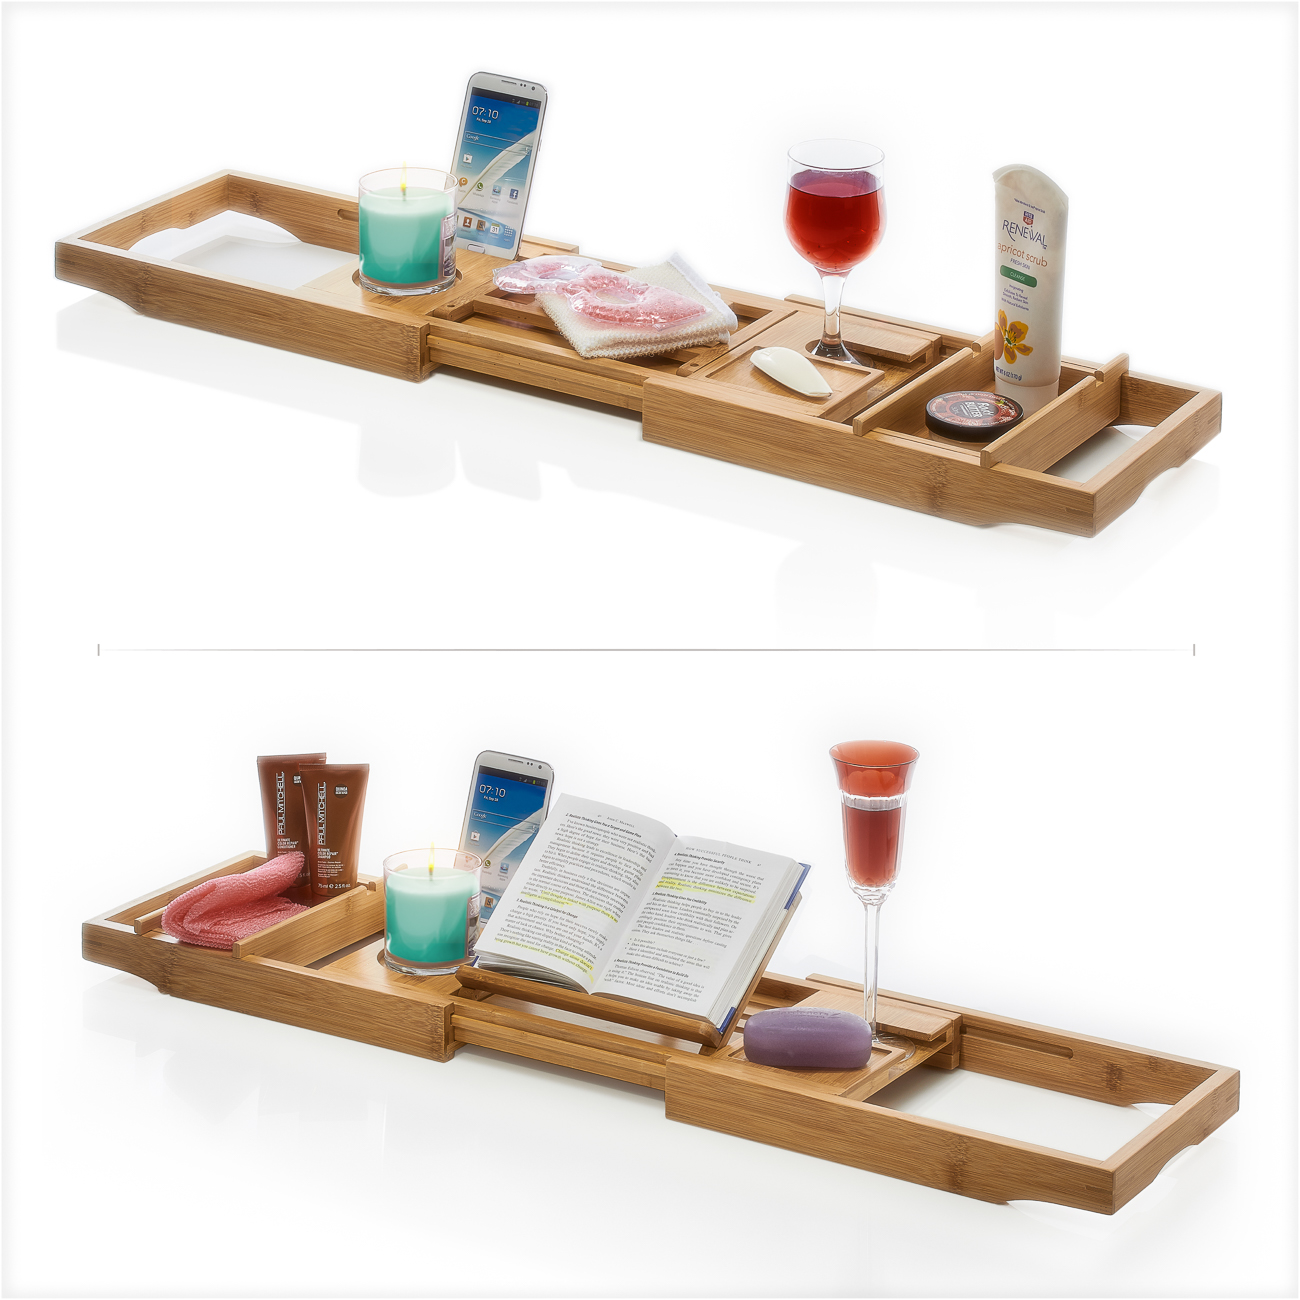 XL Bamboo Bathtub Caddy with Wine Glass Holder - Prosumer\'s Choice